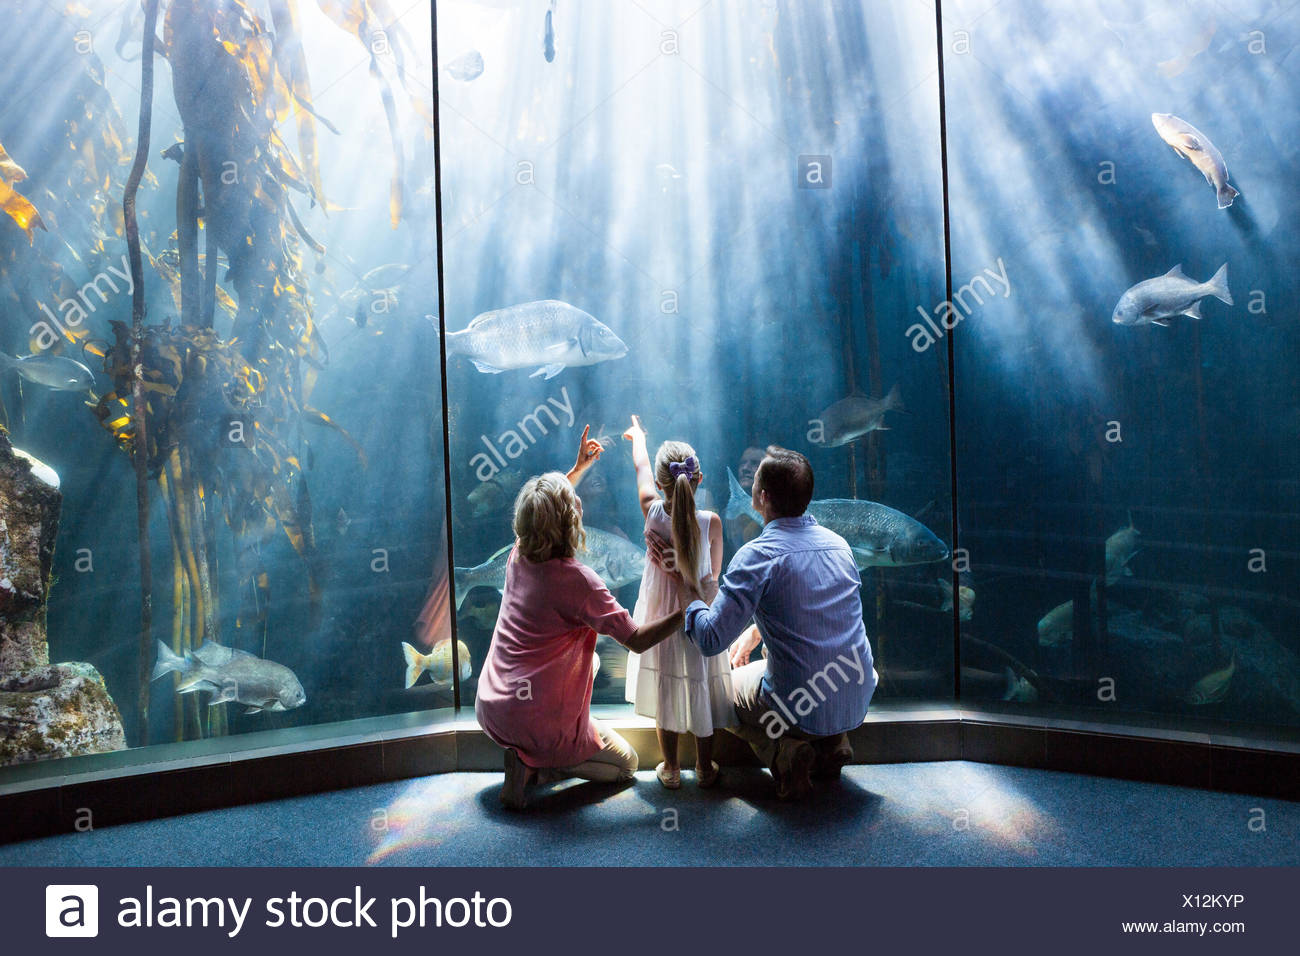 Wear view of family looking at fish tank - Stock Image